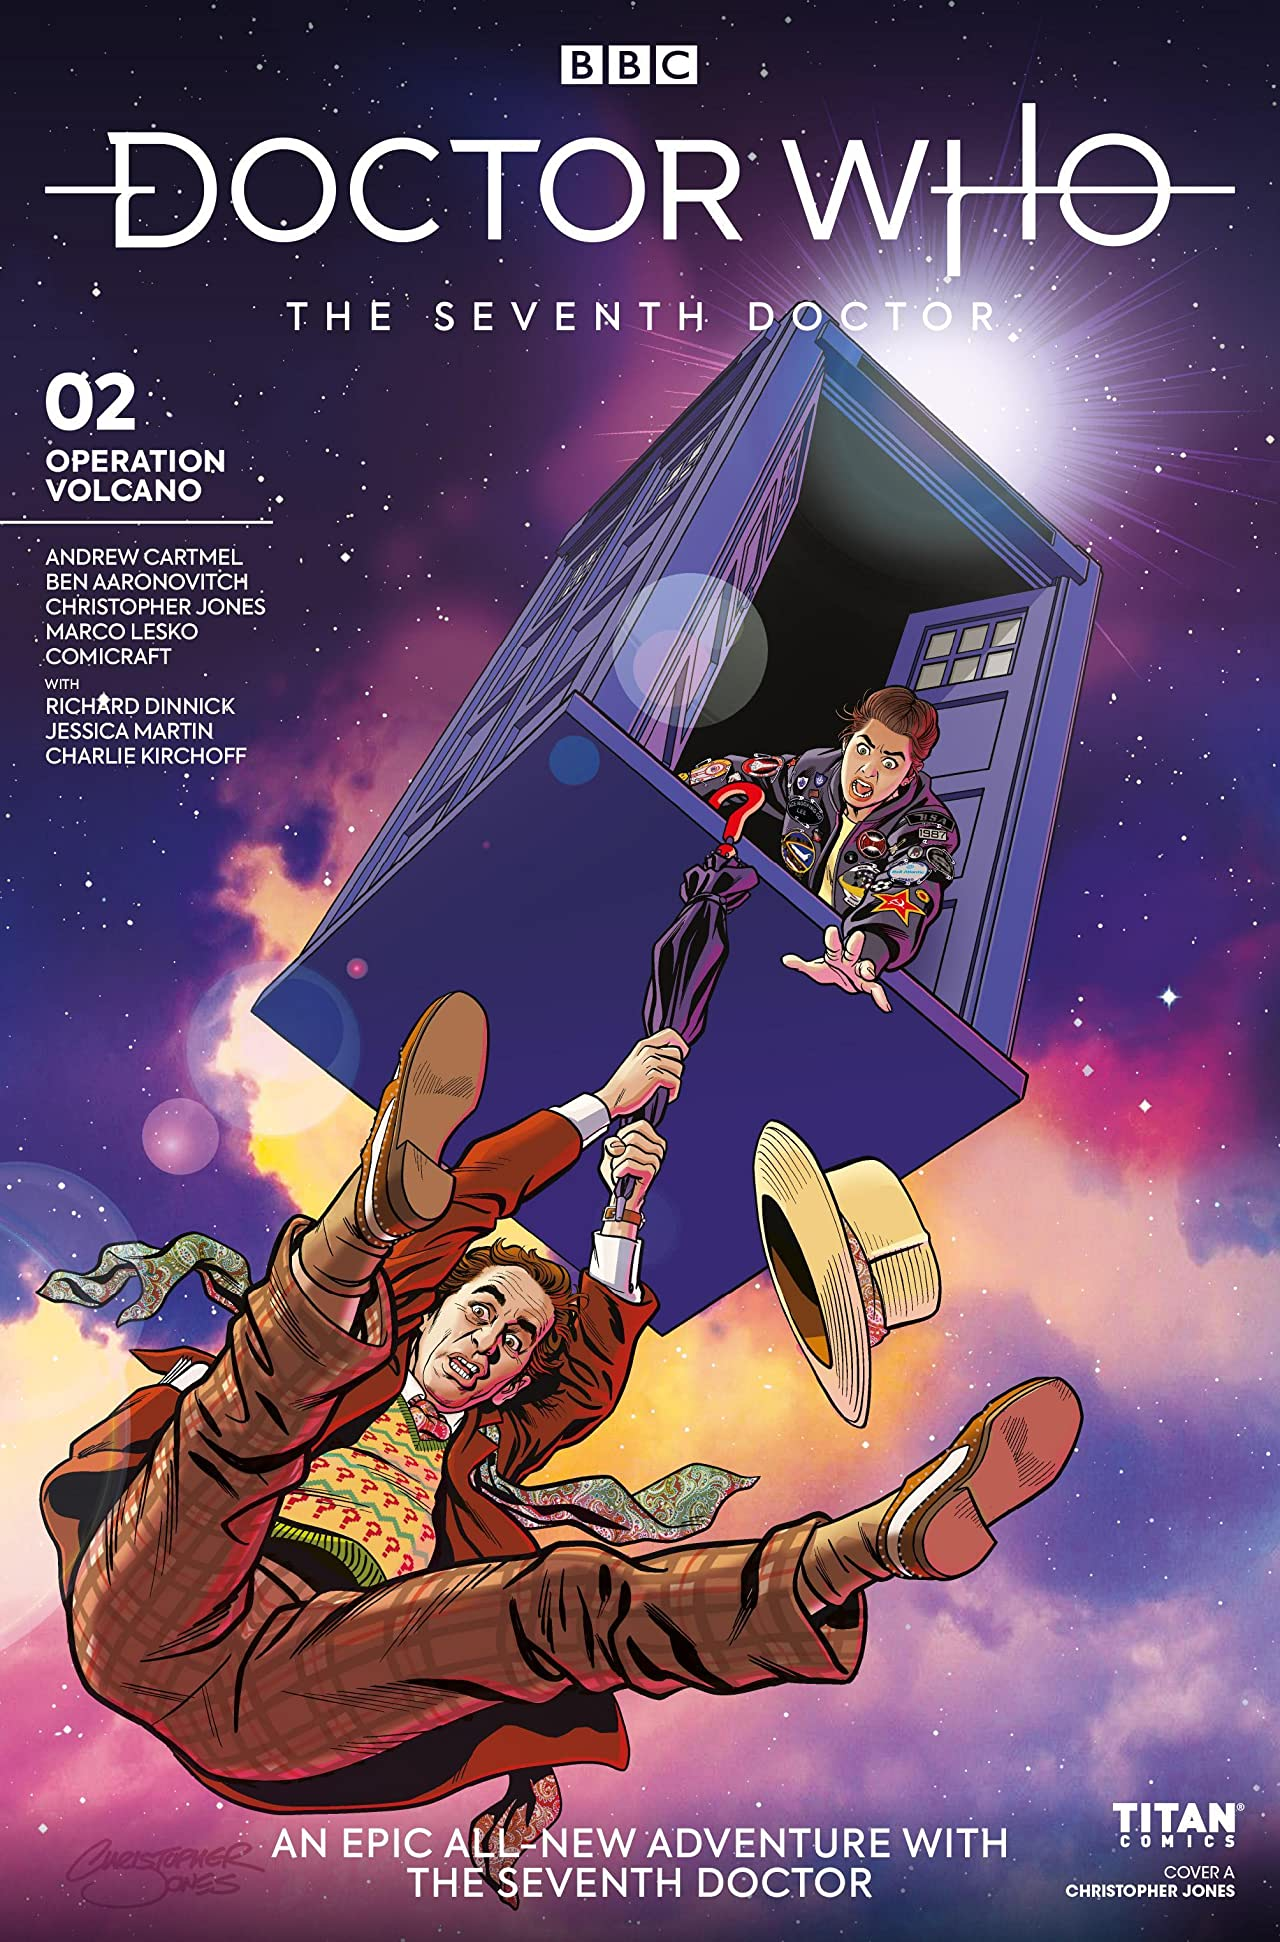 Doctor Who: The Seventh Doctor #2